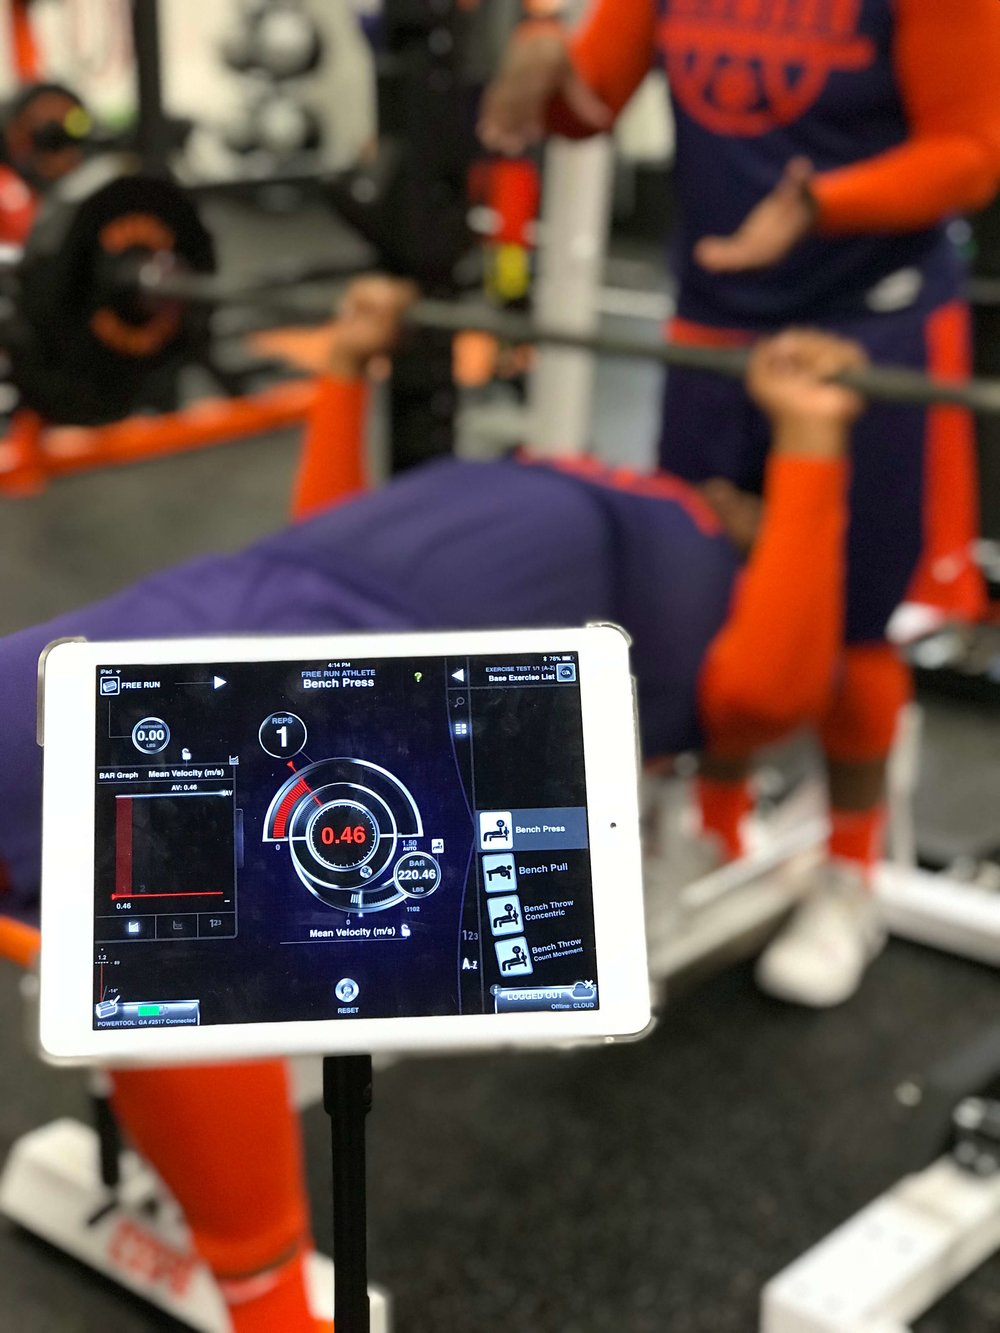 Clemson Basketball uses the GymAware system to measure bar velocity in certain key movements, to evaluate an athlete's ability to product force quickly.